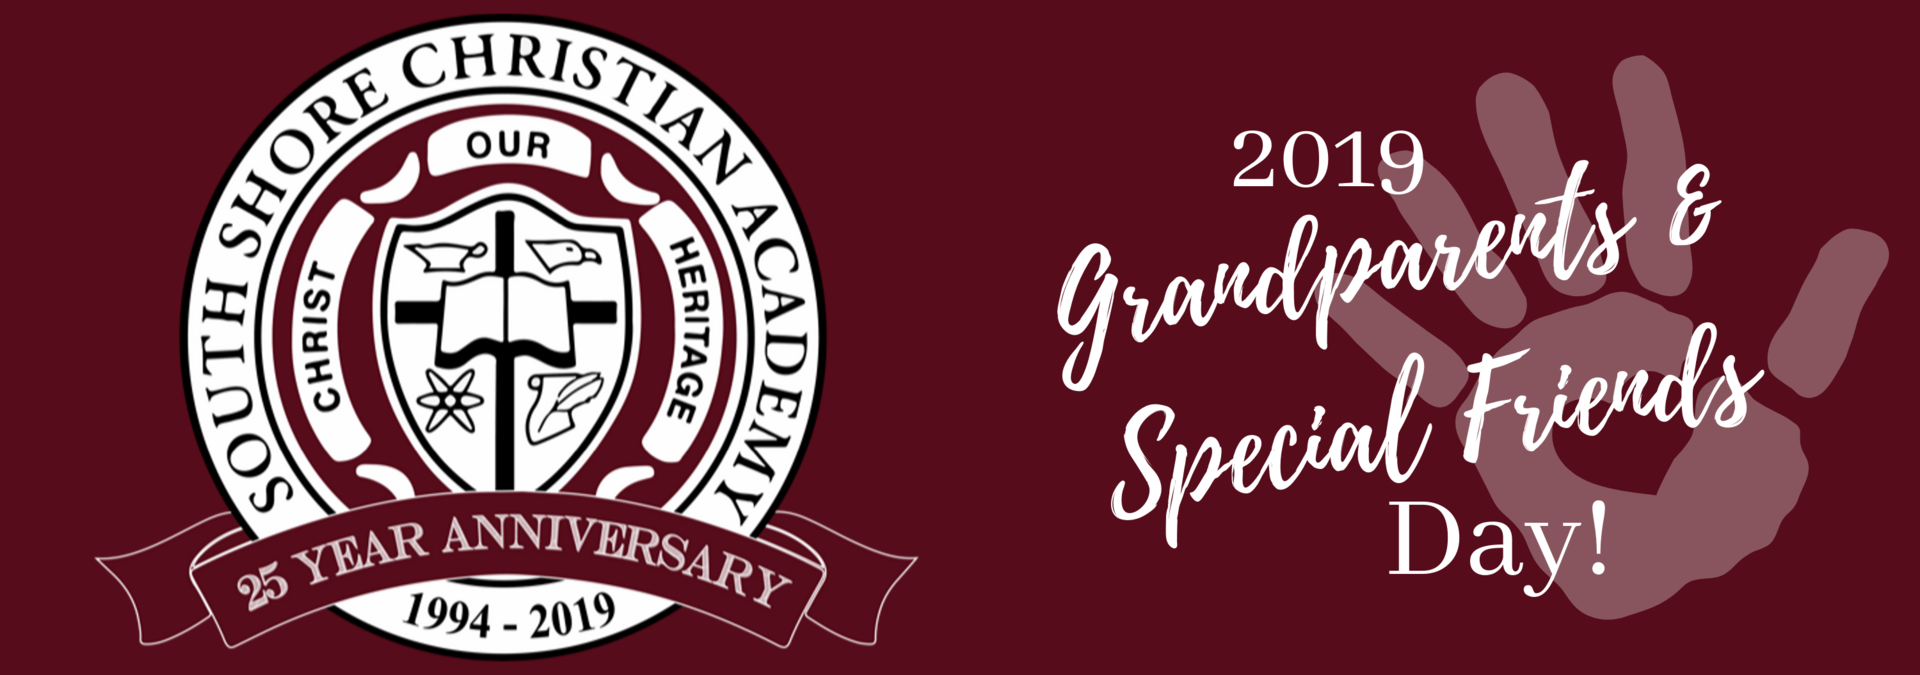 Grandparents and Special Friends Day!